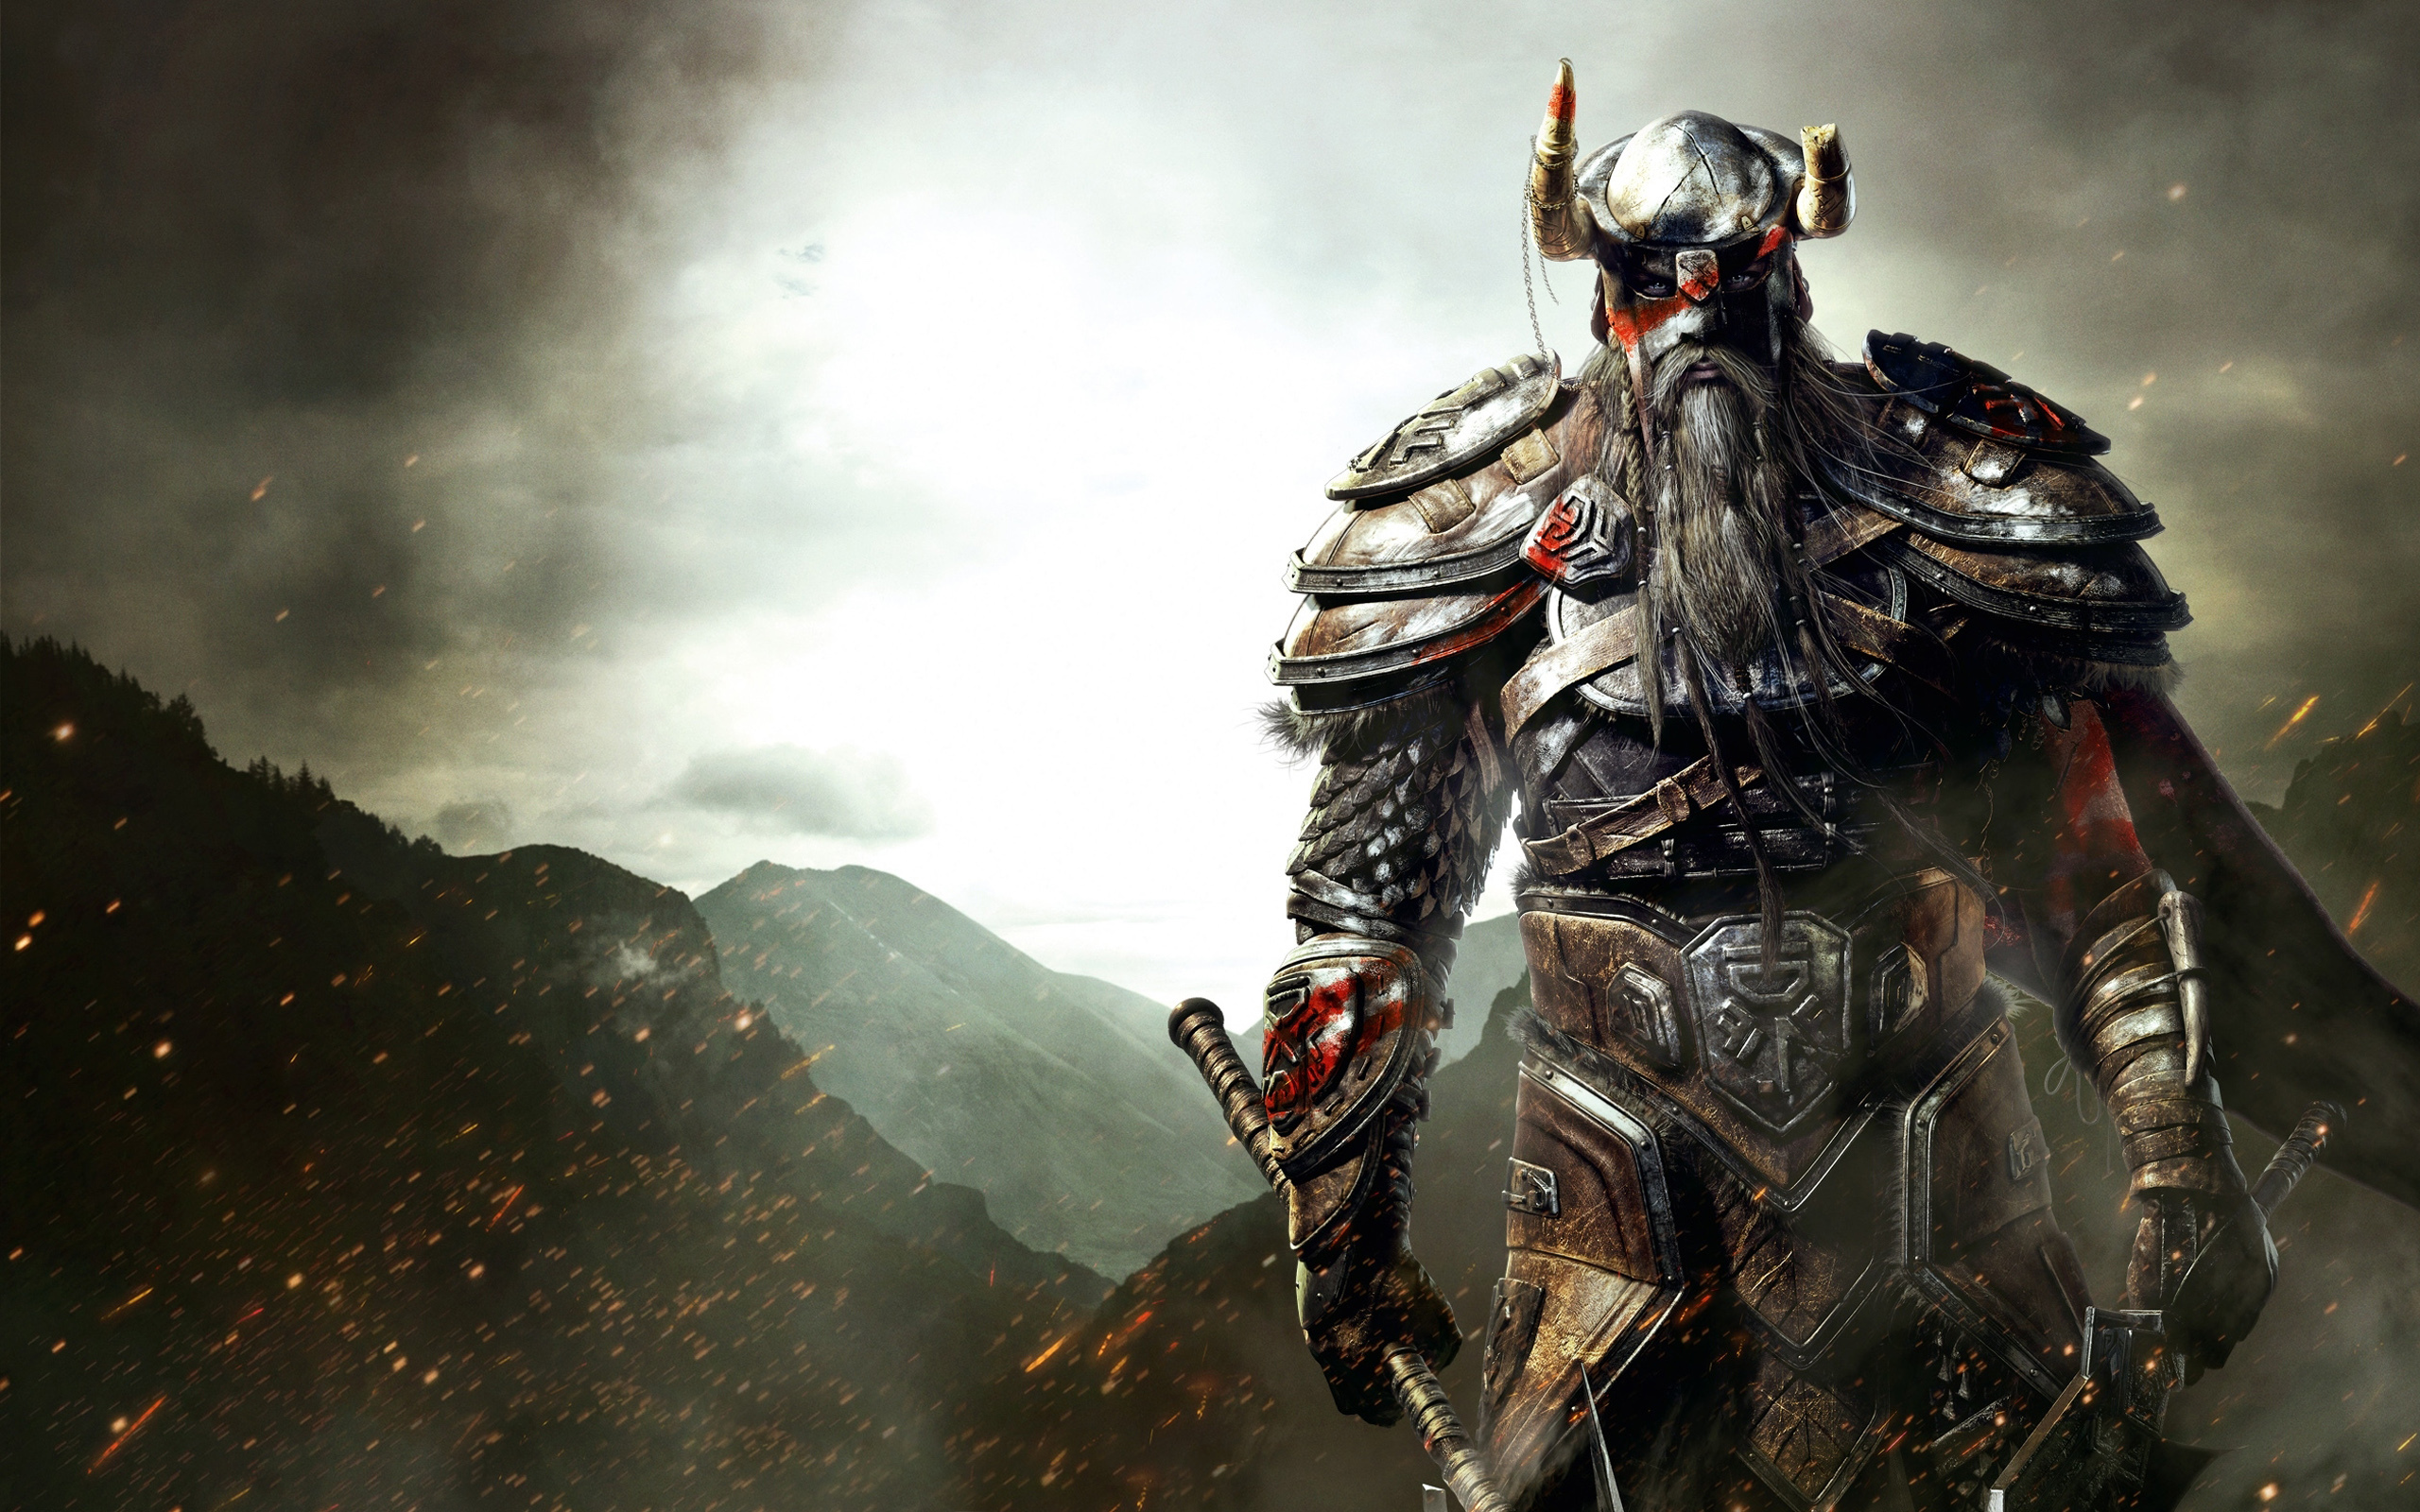 Wallpaper The Elder Scrolls Online: Power